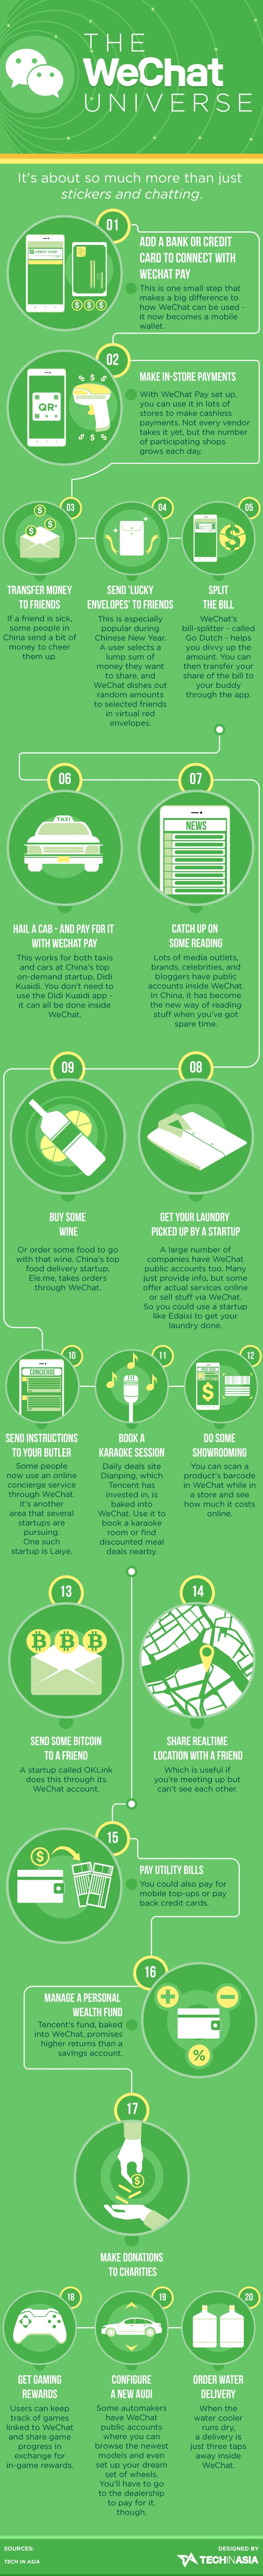 The amazing ways WeChat is used in China - yes it's true, I've used nearly all of it.